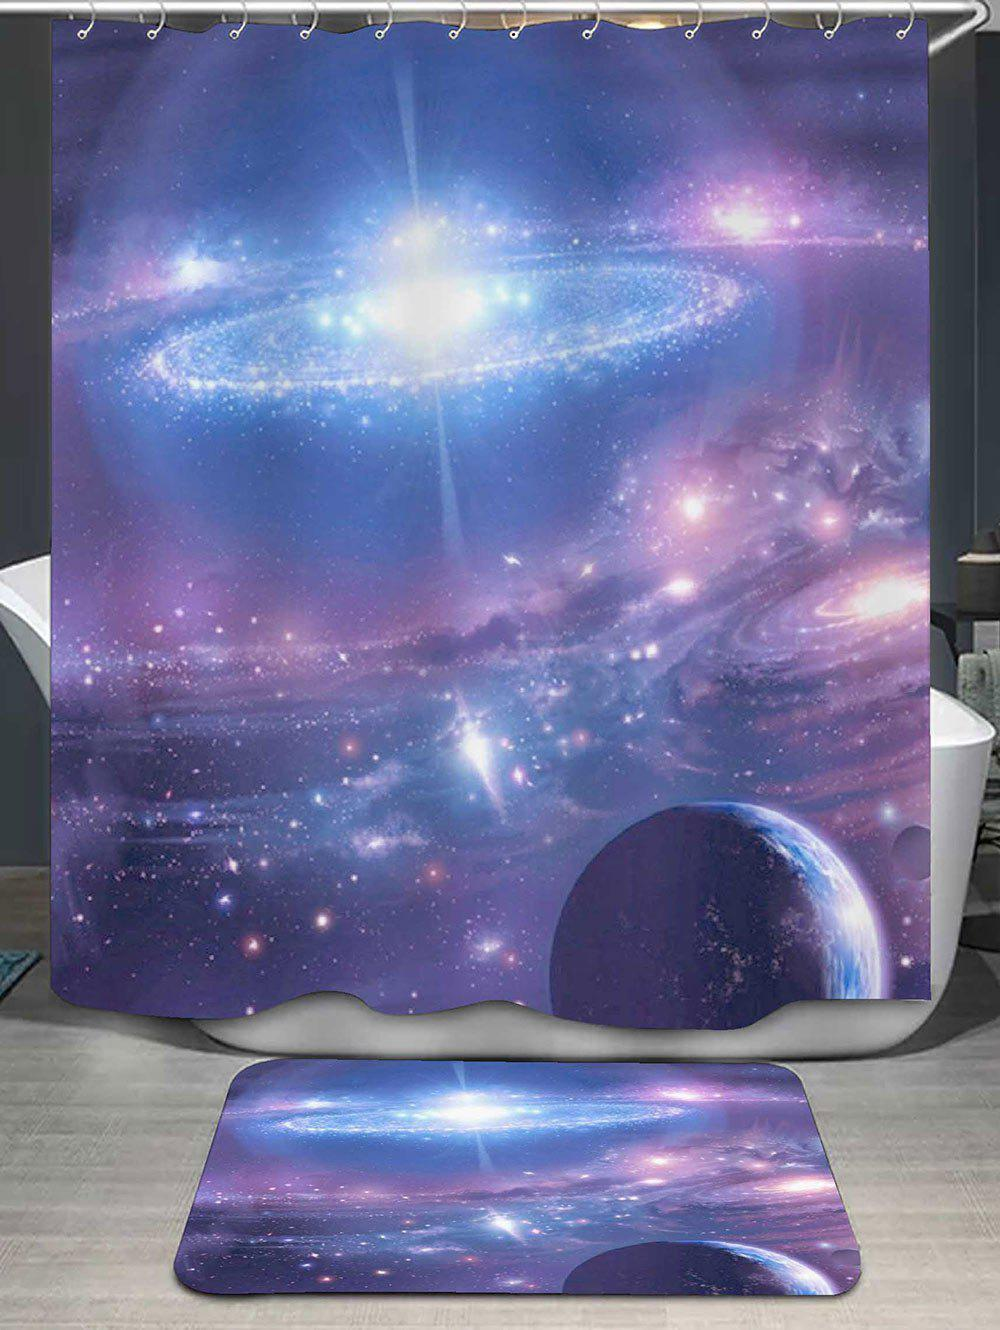 Galaxy Printed Shower Curtain and Rug galaxy printed shower curtain and area rug